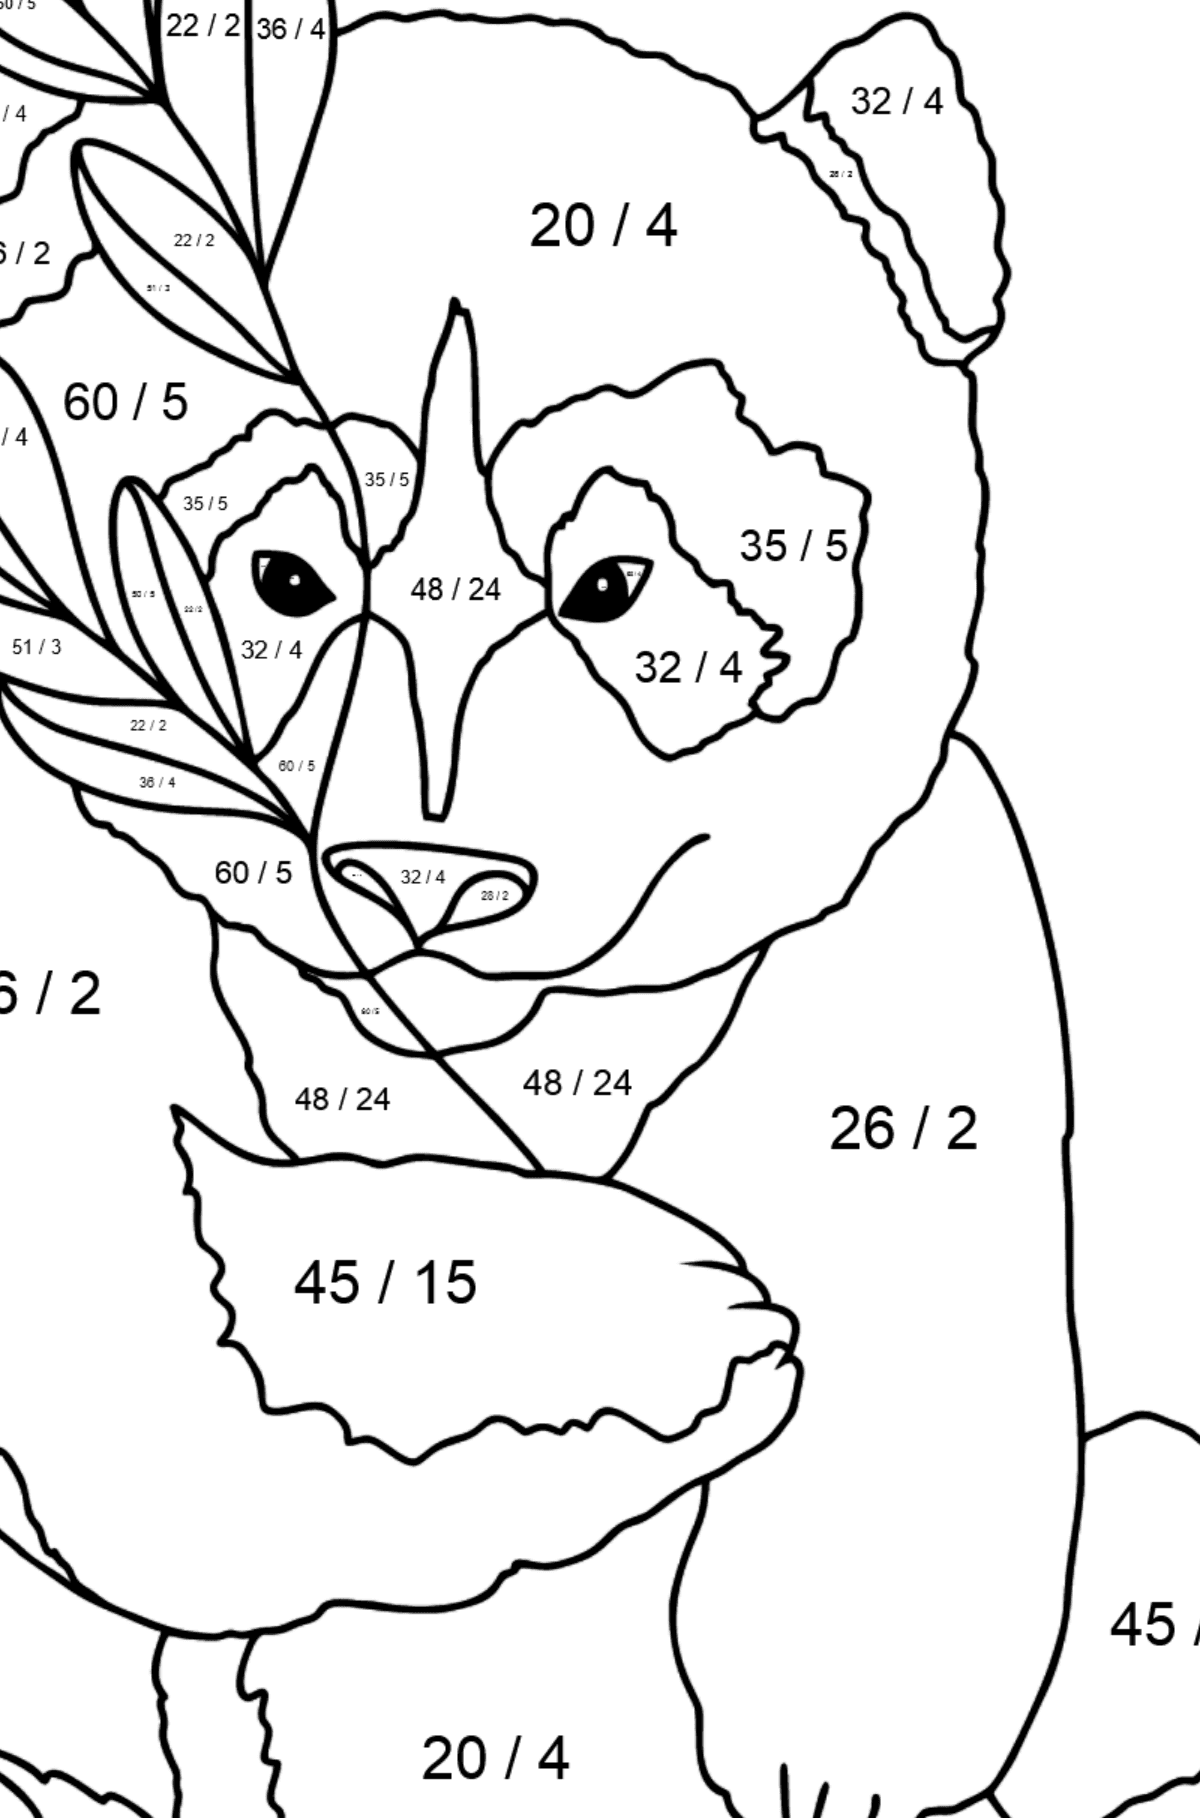 Coloring Page - A Panda Loves Bamboo Leaves - Math Coloring - Division for Kids